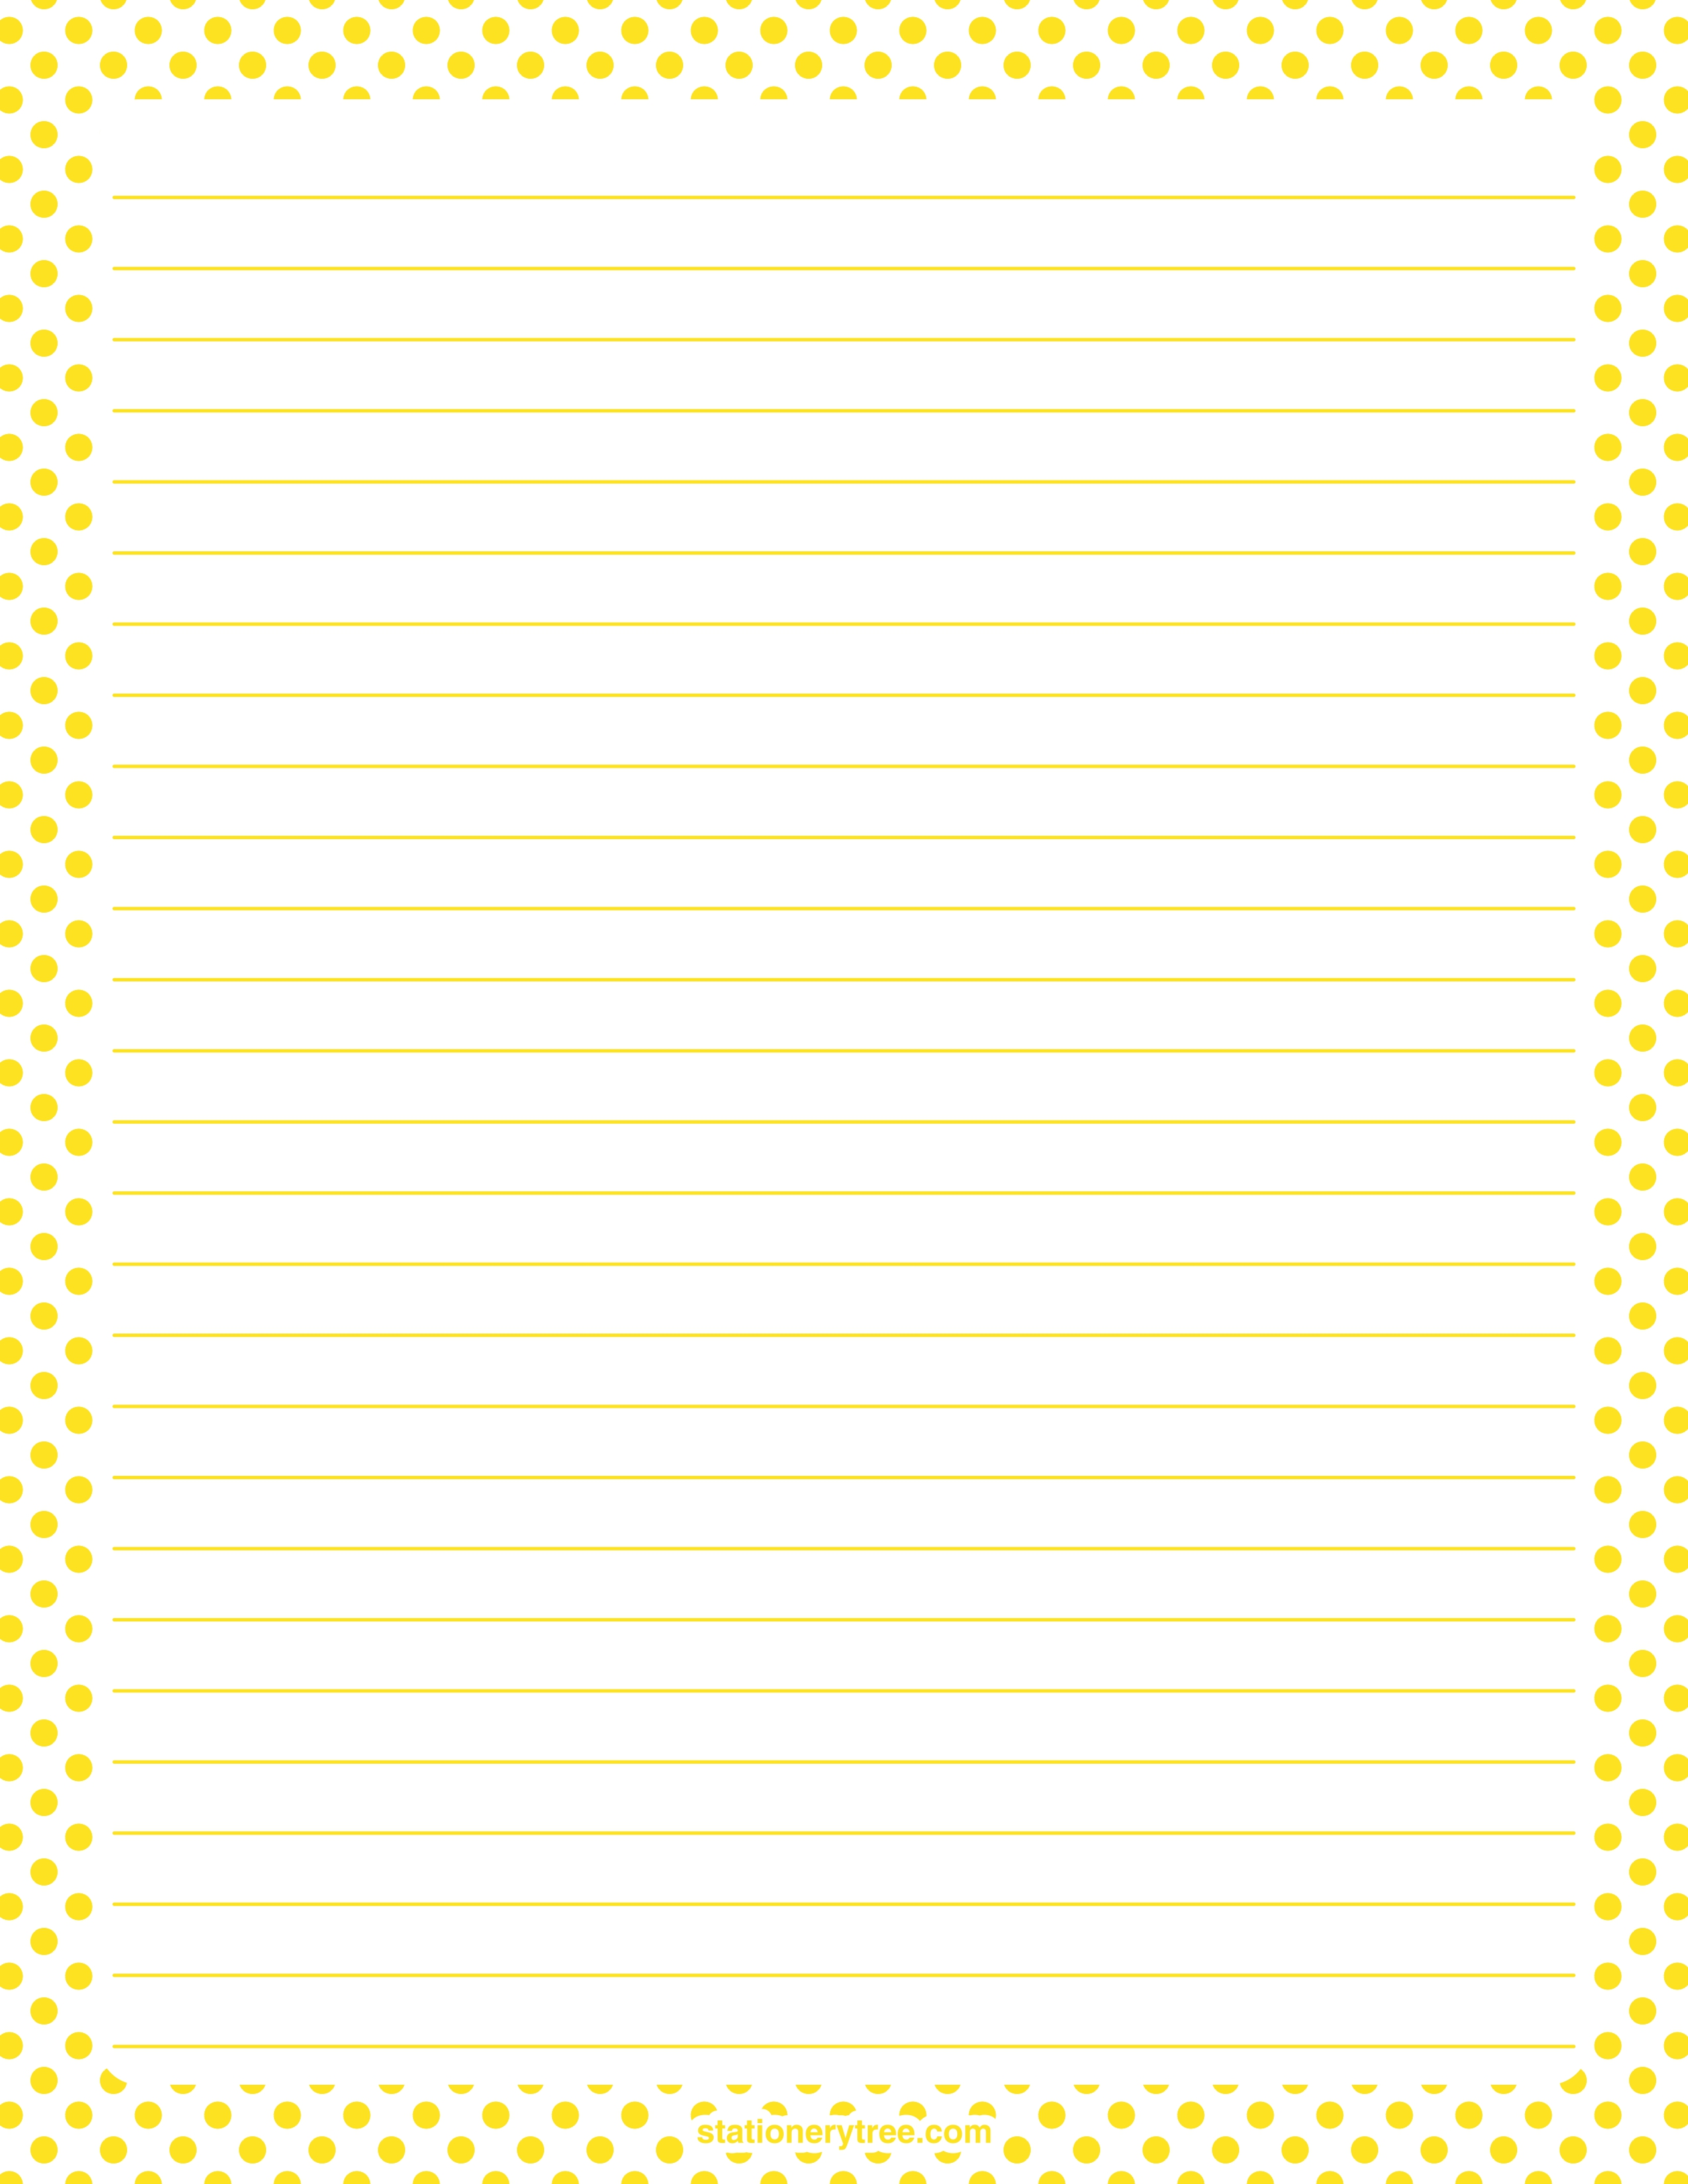 Printable yellow and white polka dot stationery and writing paper ...